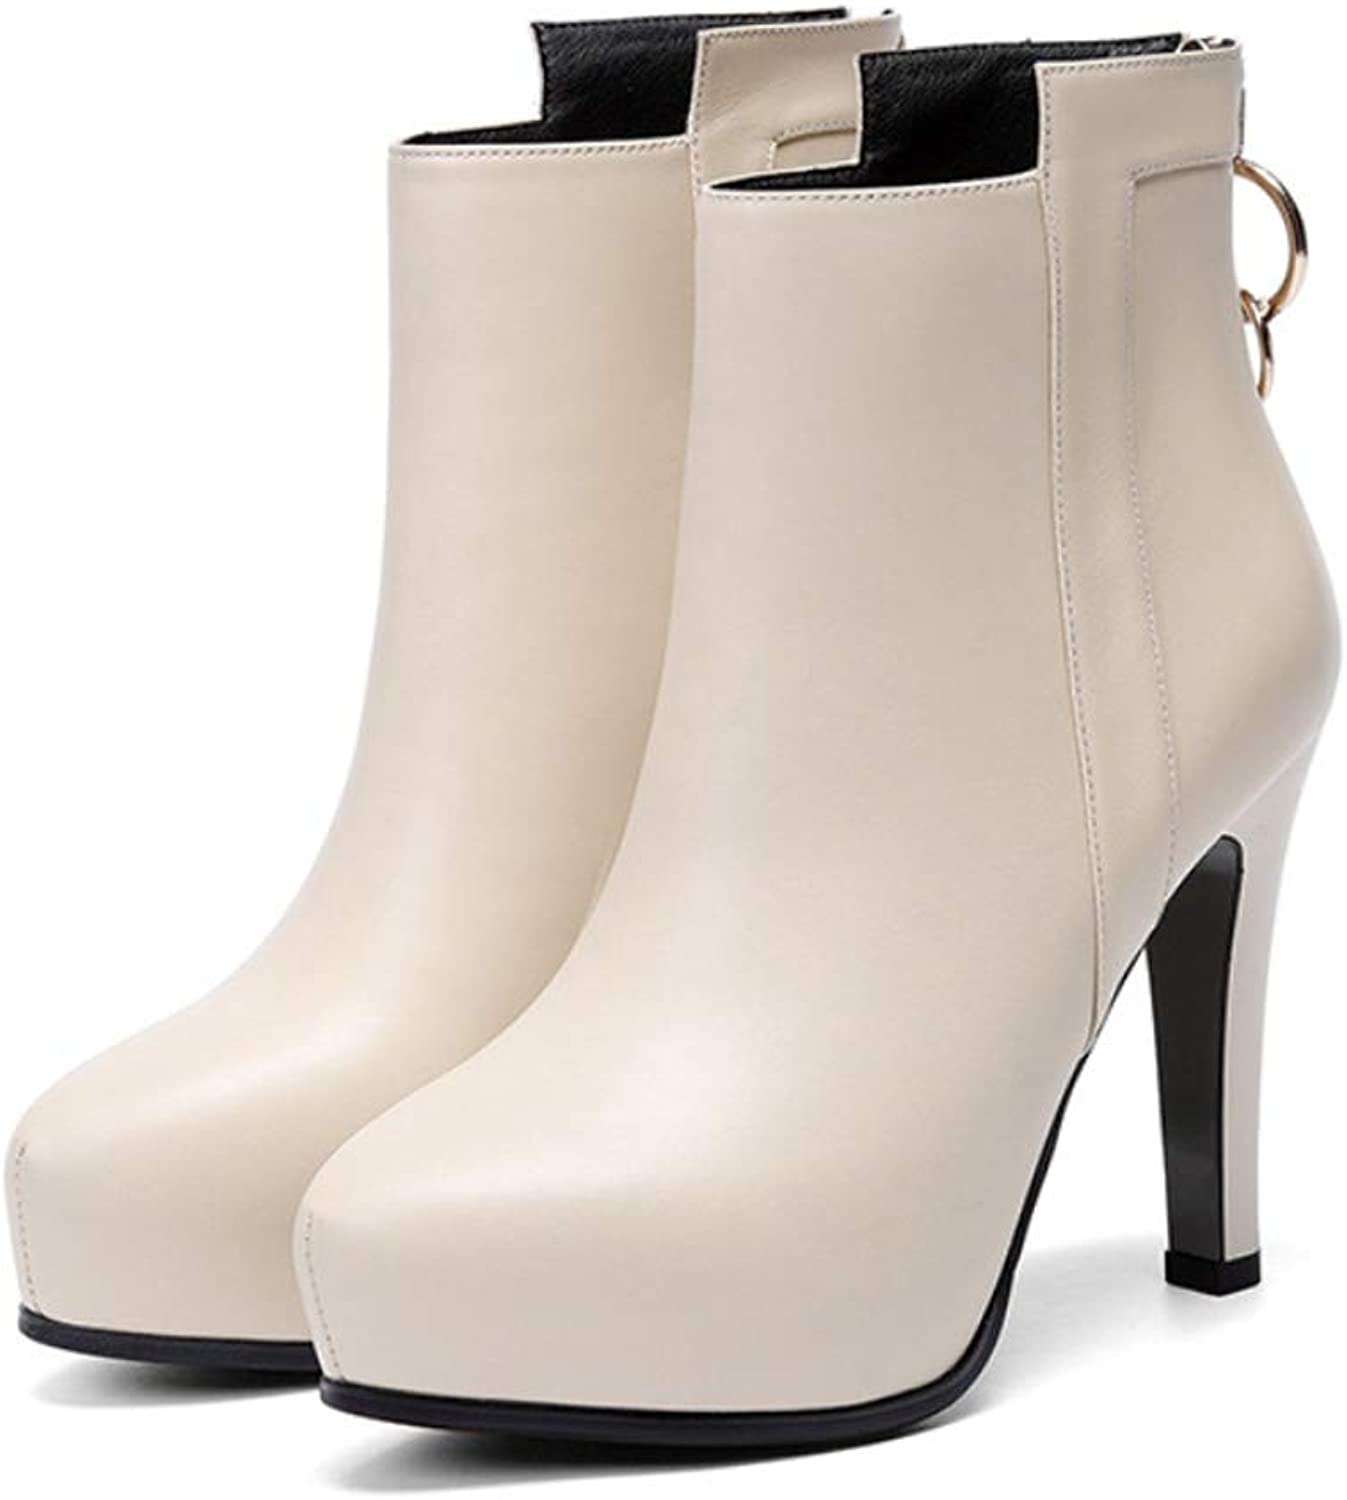 Womens shoes Super High Heel Sexy Ankle Boots Ladies Stiletto Heel Zipper High-Top shoes for Fall Winter